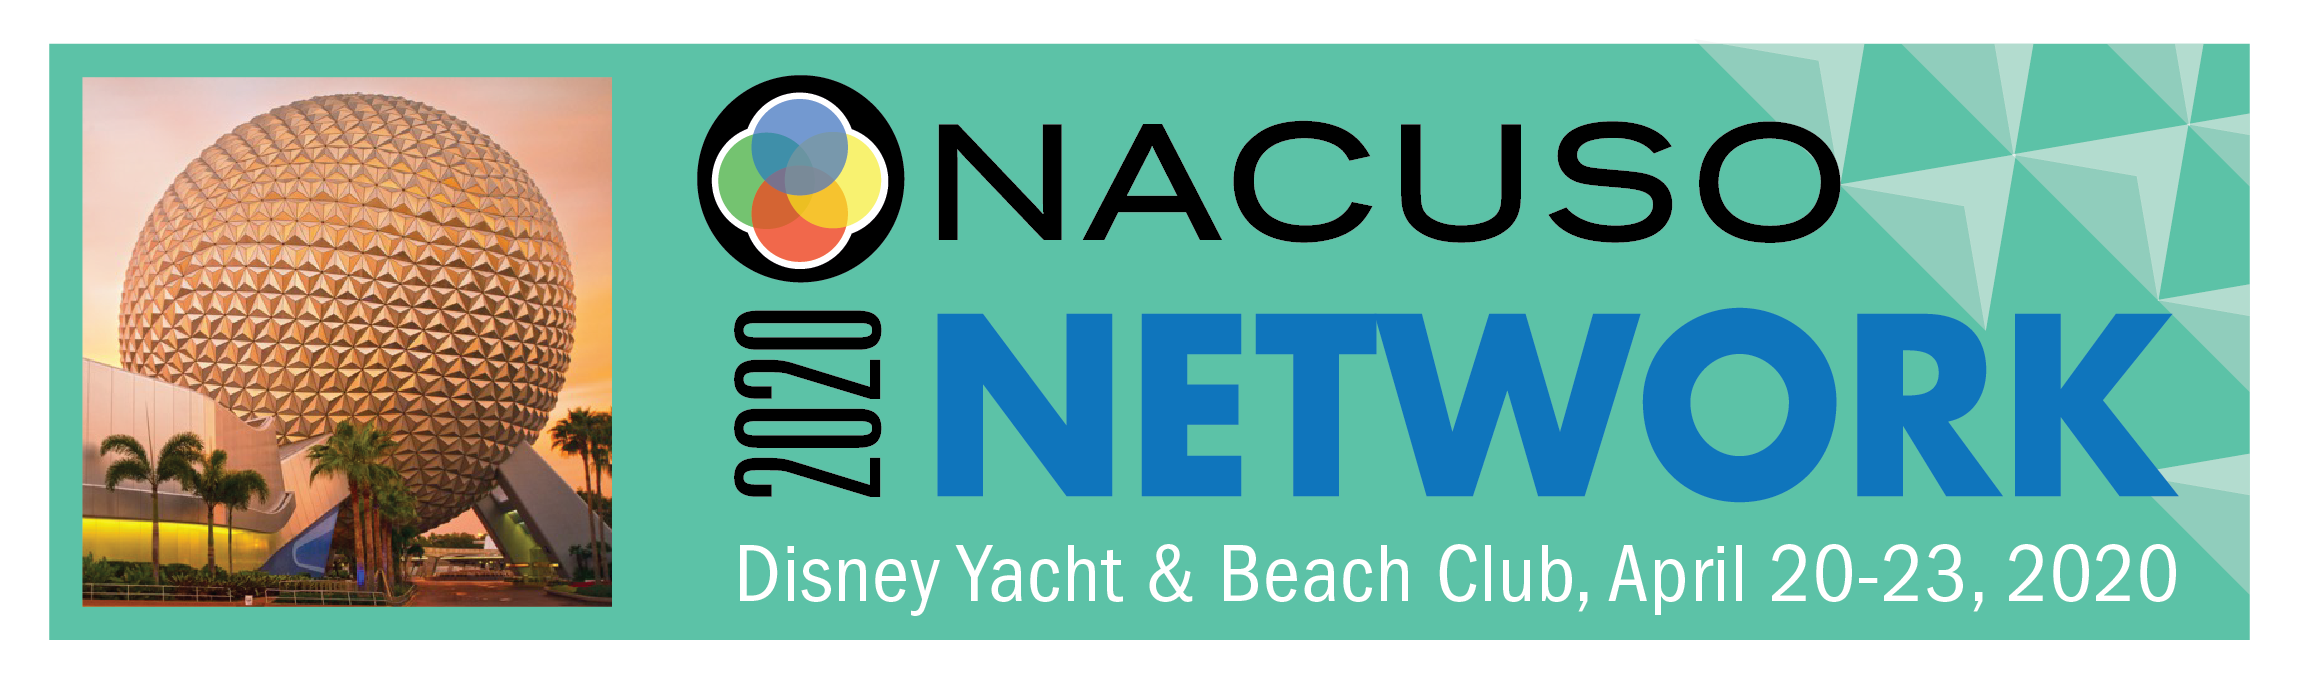 2020 NACUSO NETWORK CONFERENCE April 14-17-2020 in San Diego